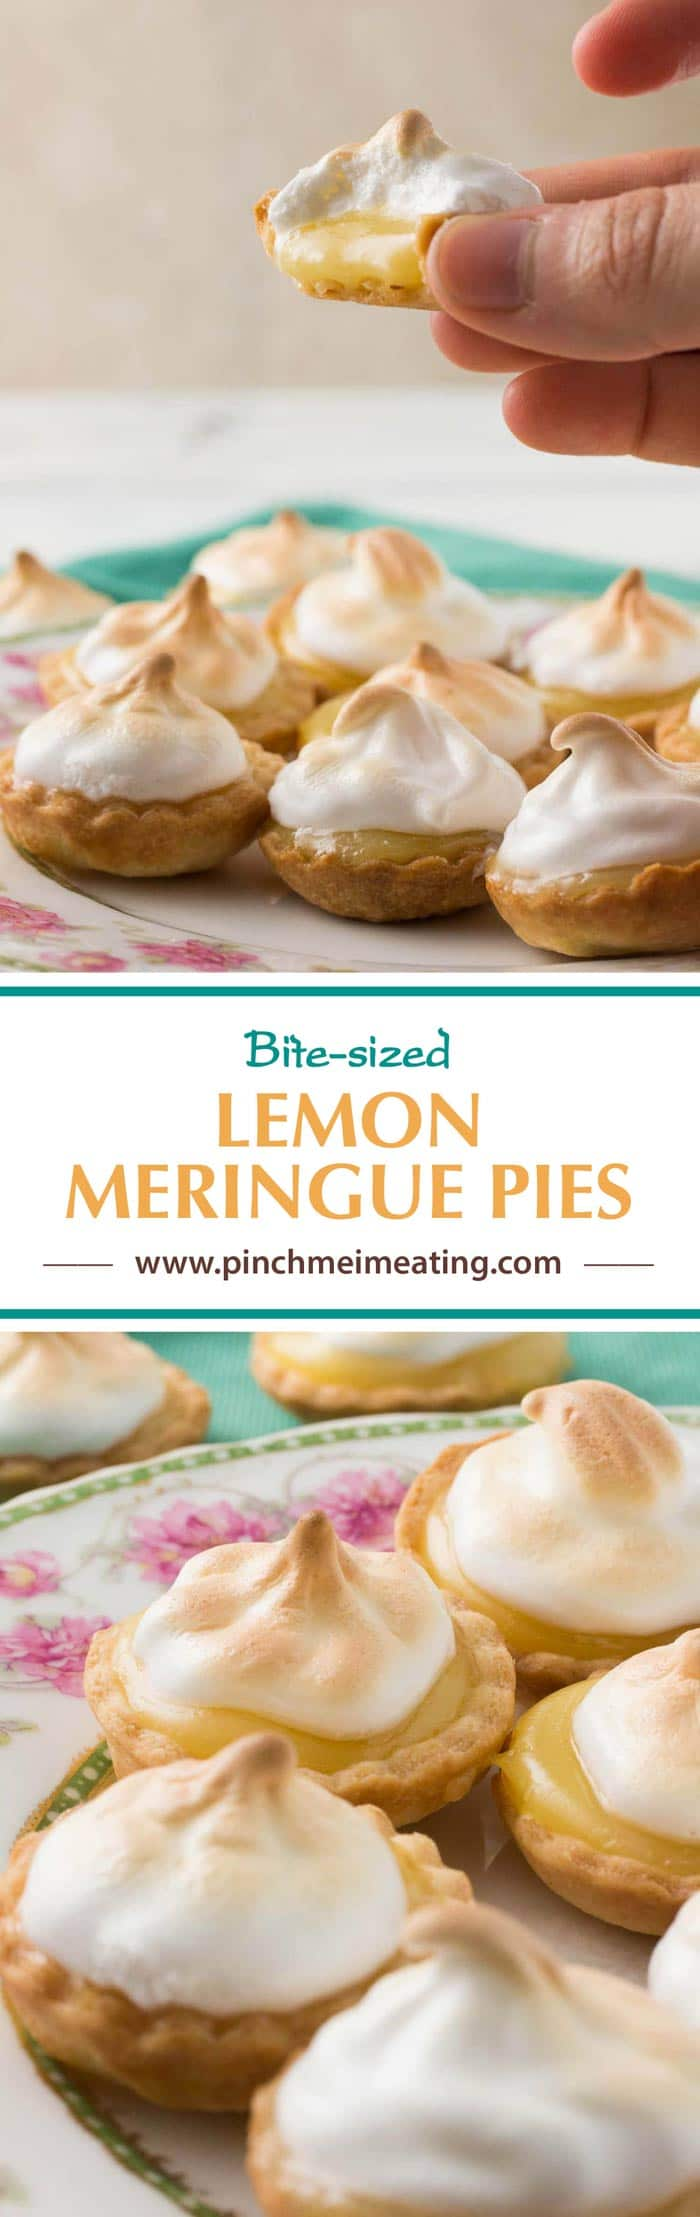 These bite-sized mini lemon meringue pies are a charming and adorable dessert for a springtime or Mother's Day tea party! You can use homemade or store-bought lemon curd.   How to use lemon curd   Mother's Day desserts   Afternoon tea desserts   Afternoon tea recipes